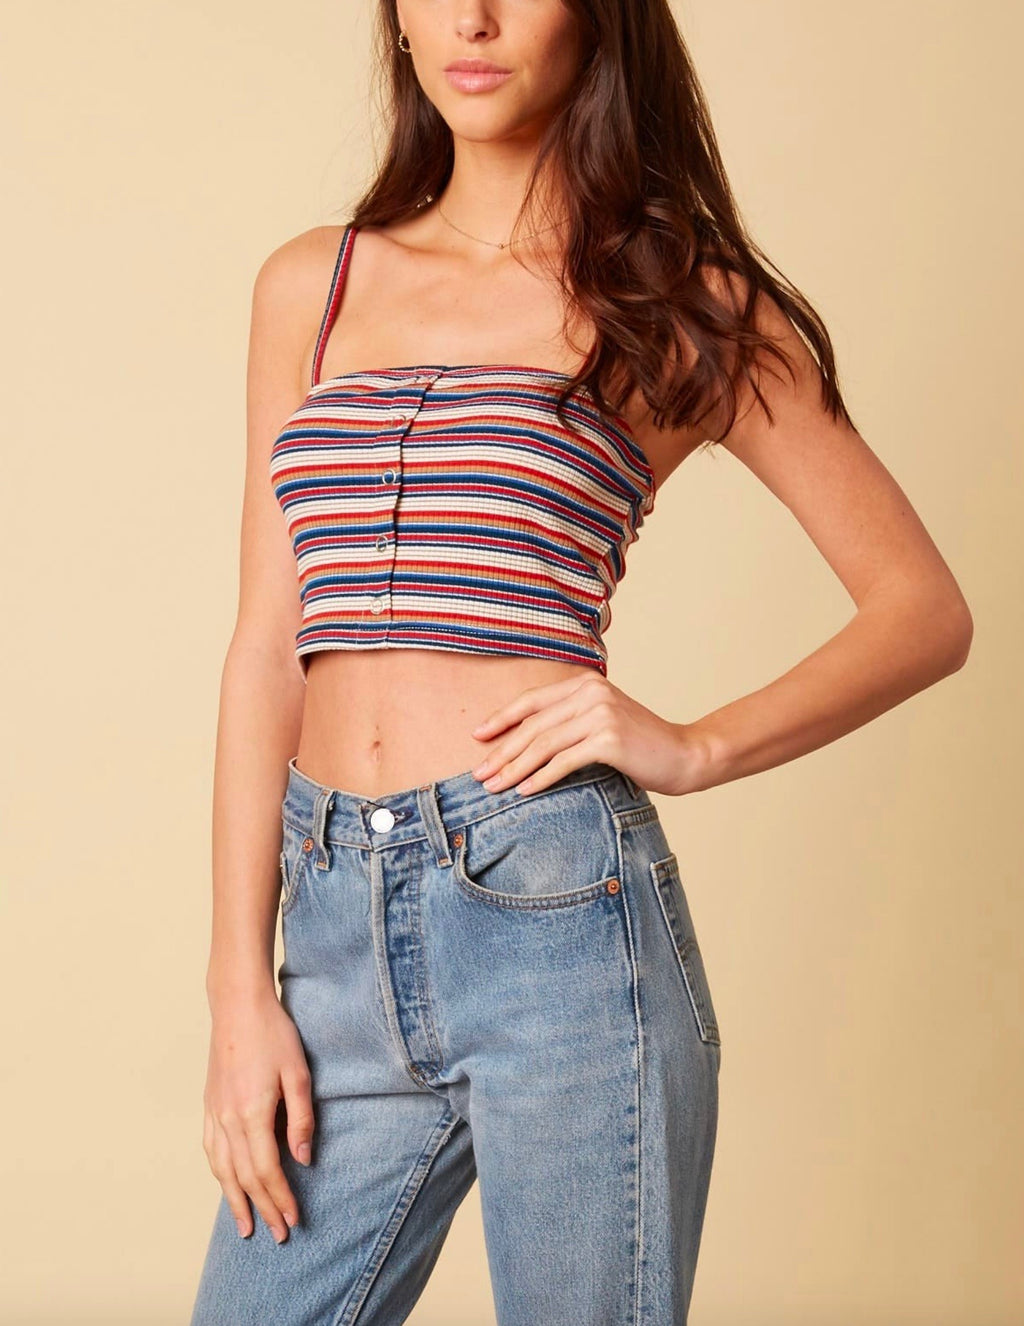 cotton candy la - baby girl ribbed stripe knit crop top - tan/multi